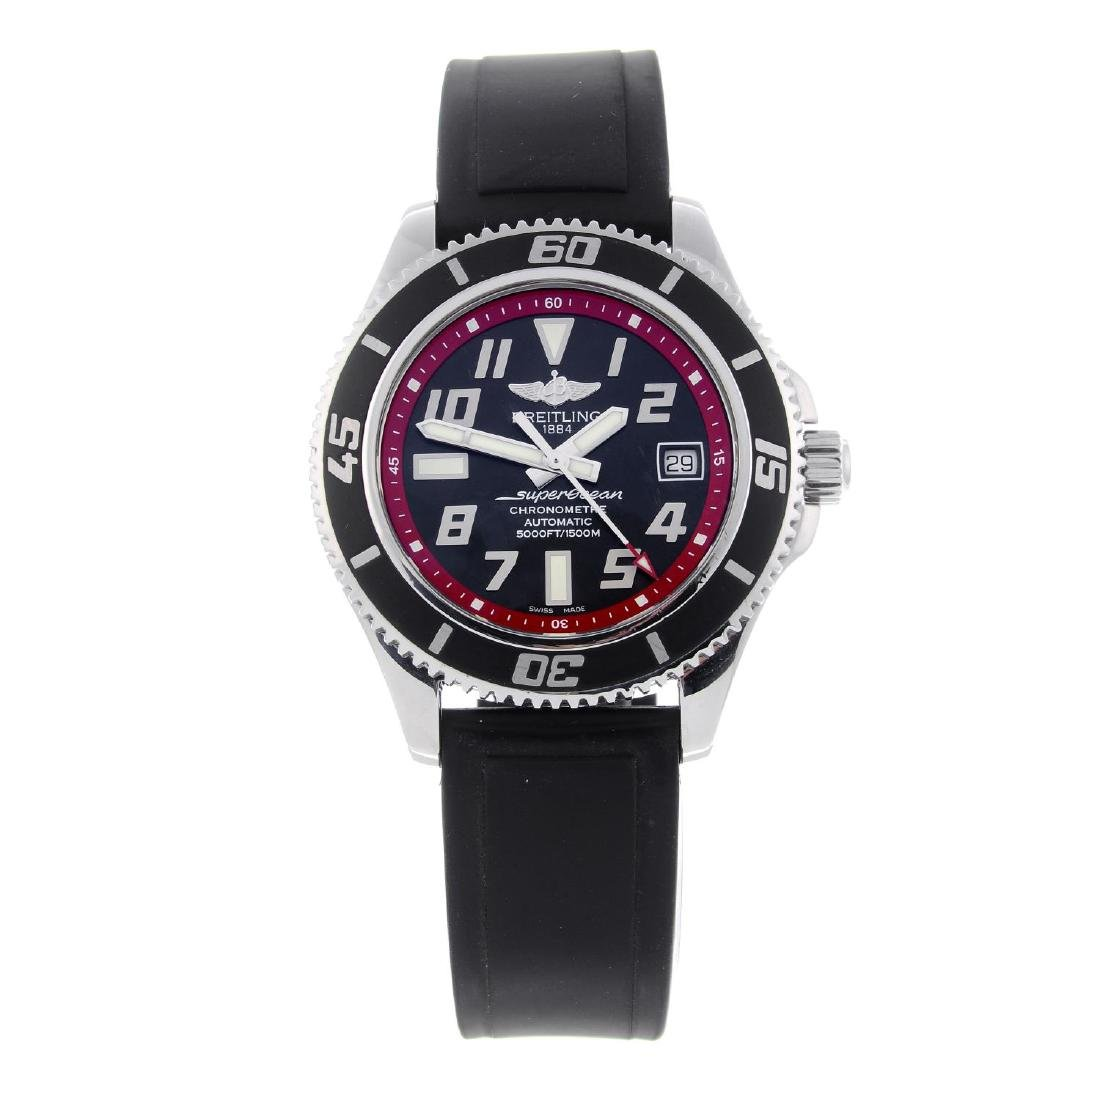 BREITLING - a gentleman's SuperOcean wrist watch.